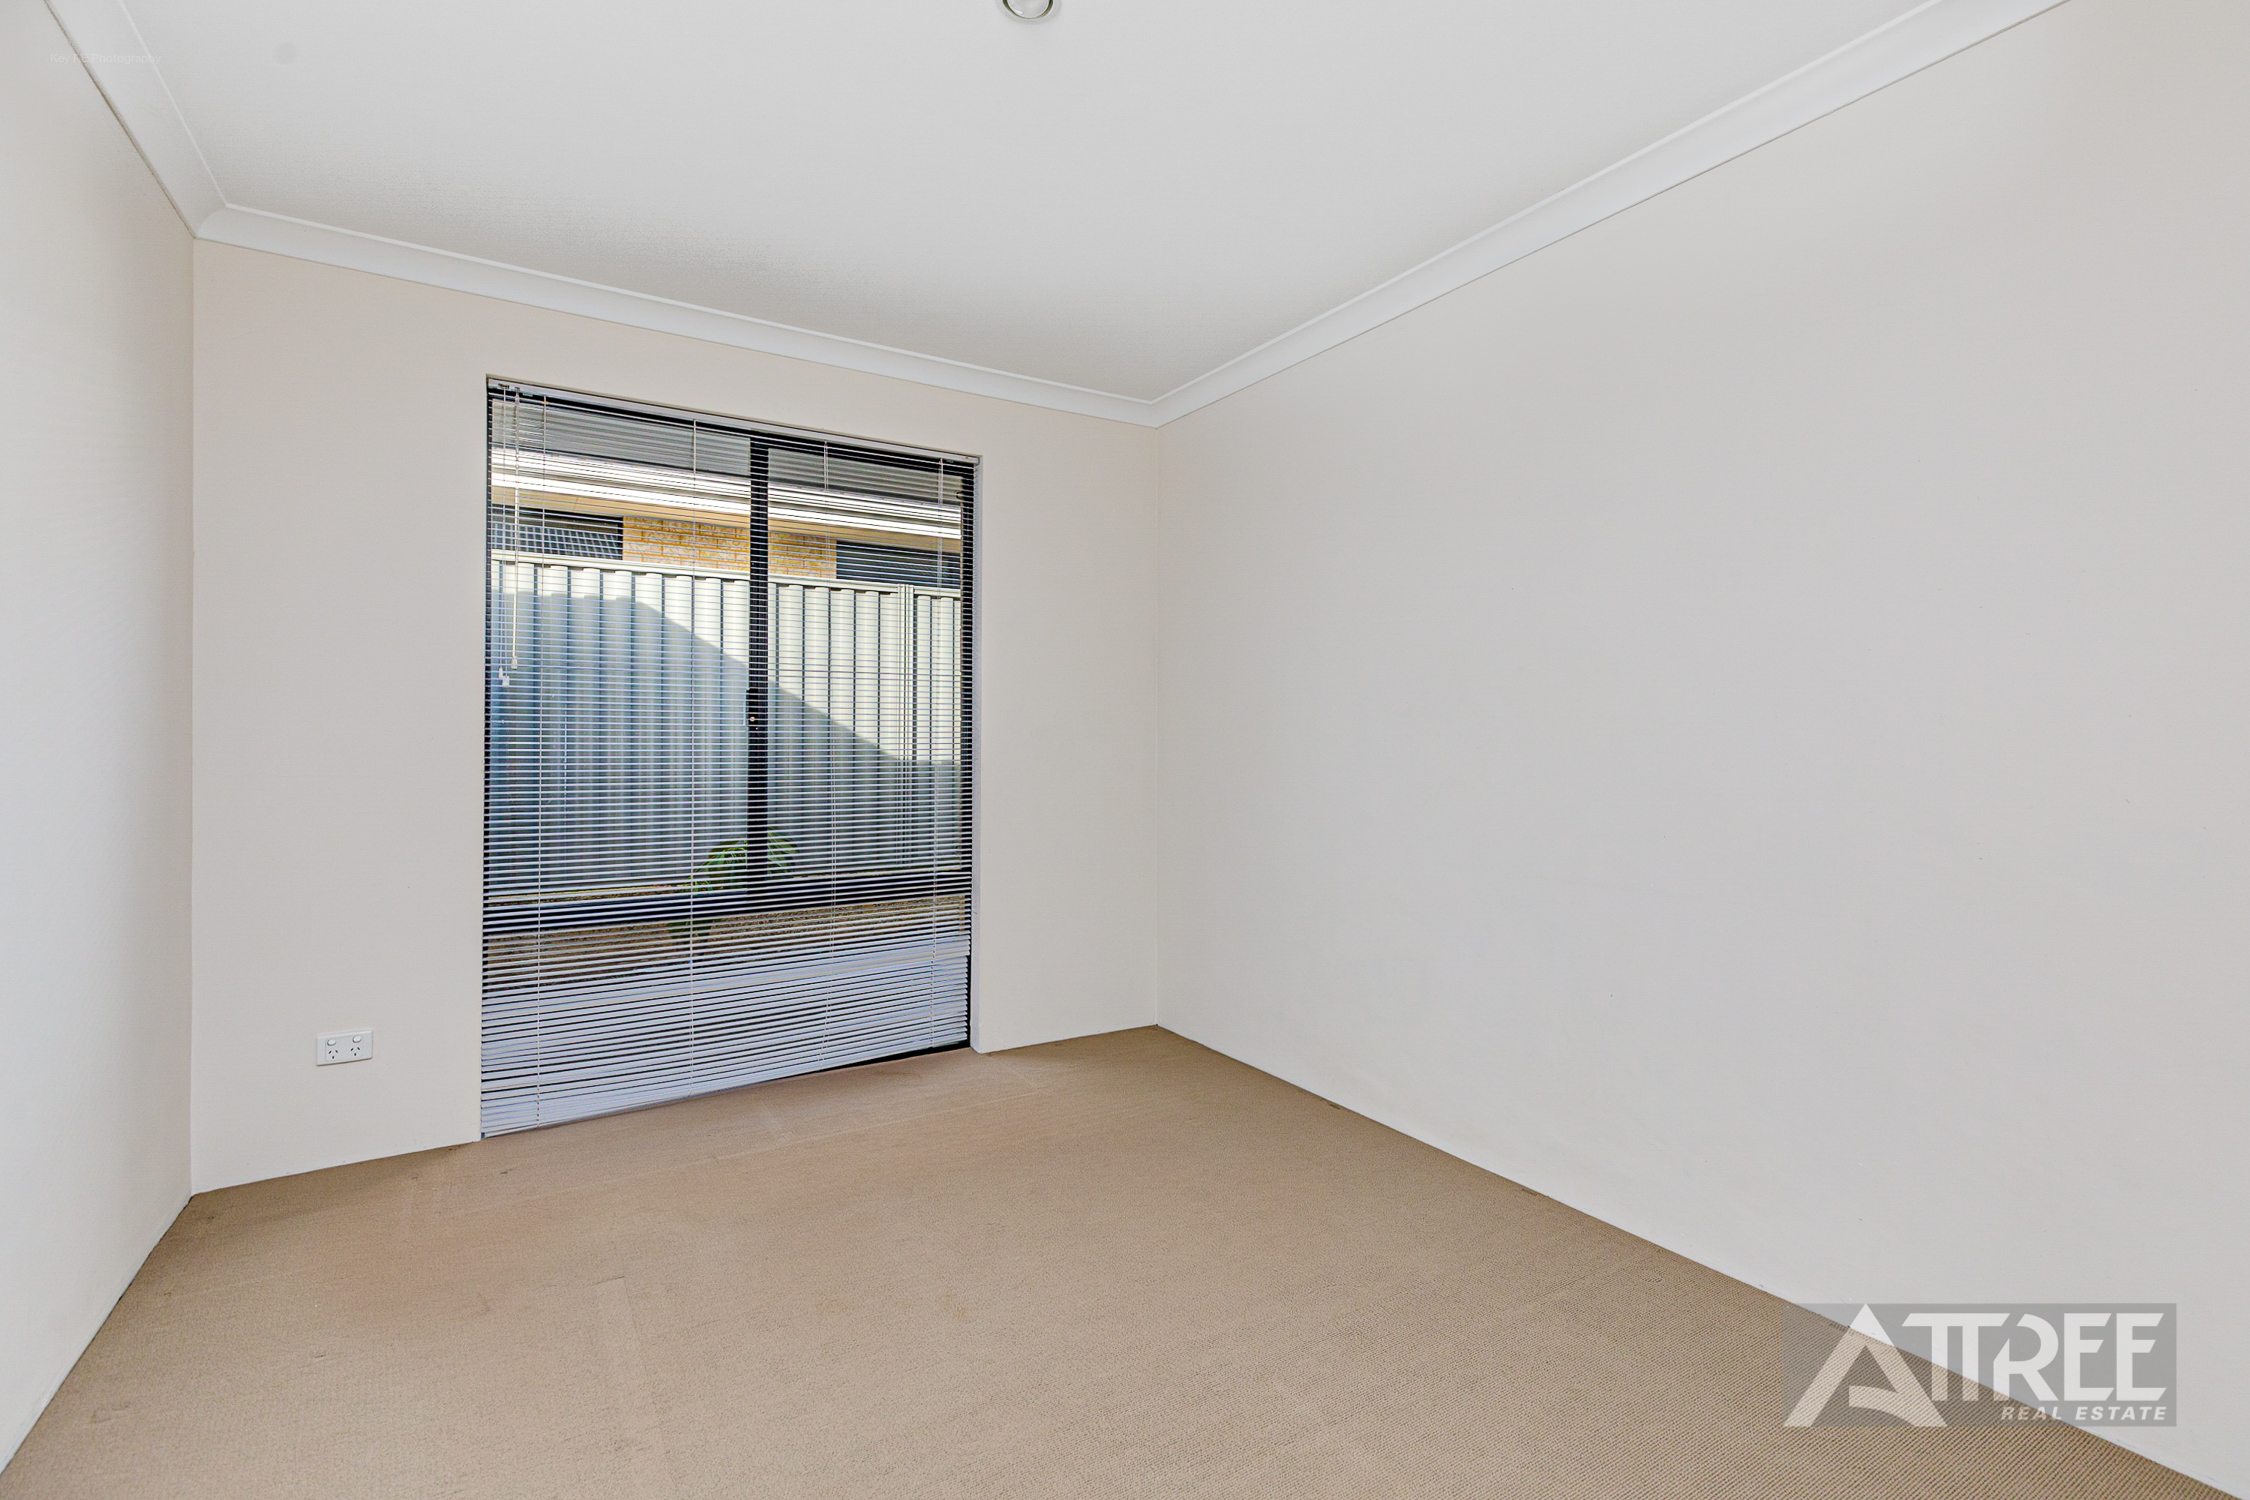 Property for sale in PIARA WATERS, 15 Durant Way : Attree Real Estate